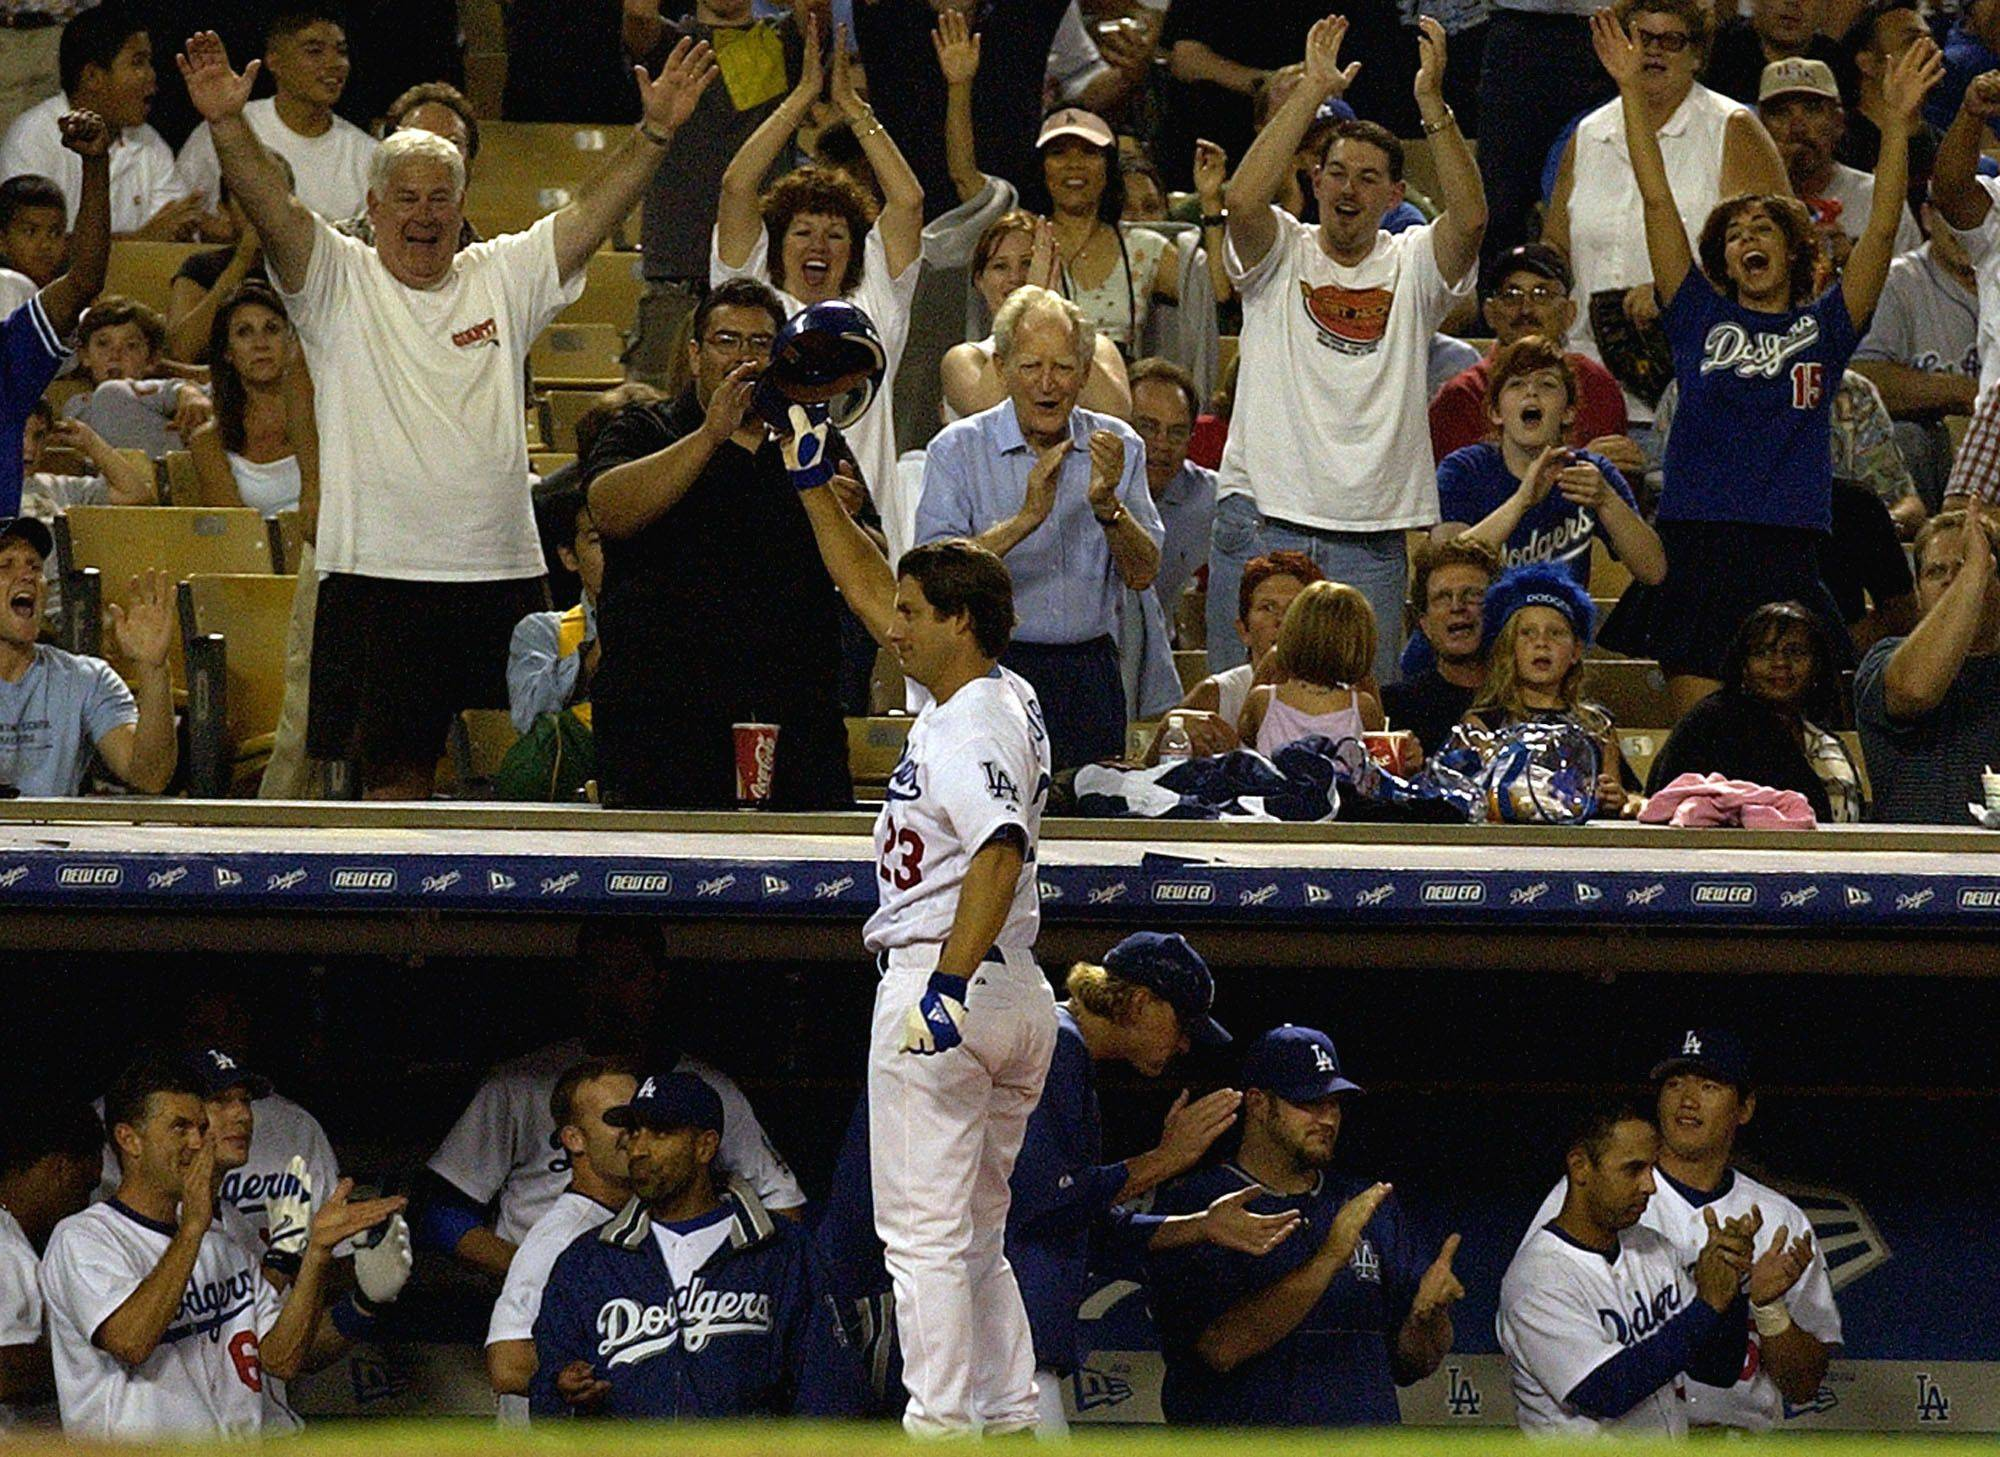 Los Angeles Dodgers' Robin Ventura takes a curtain call after hitting a grand slam off Arizona Diamondbacks pitcher Chad Durbin in the seventh inning at Dodger Stadium in Los Angeles on Tuesday, Sept. 7, 2004. Shawn Green, Jayson Werth, and Alex Cora also scored on the homer.